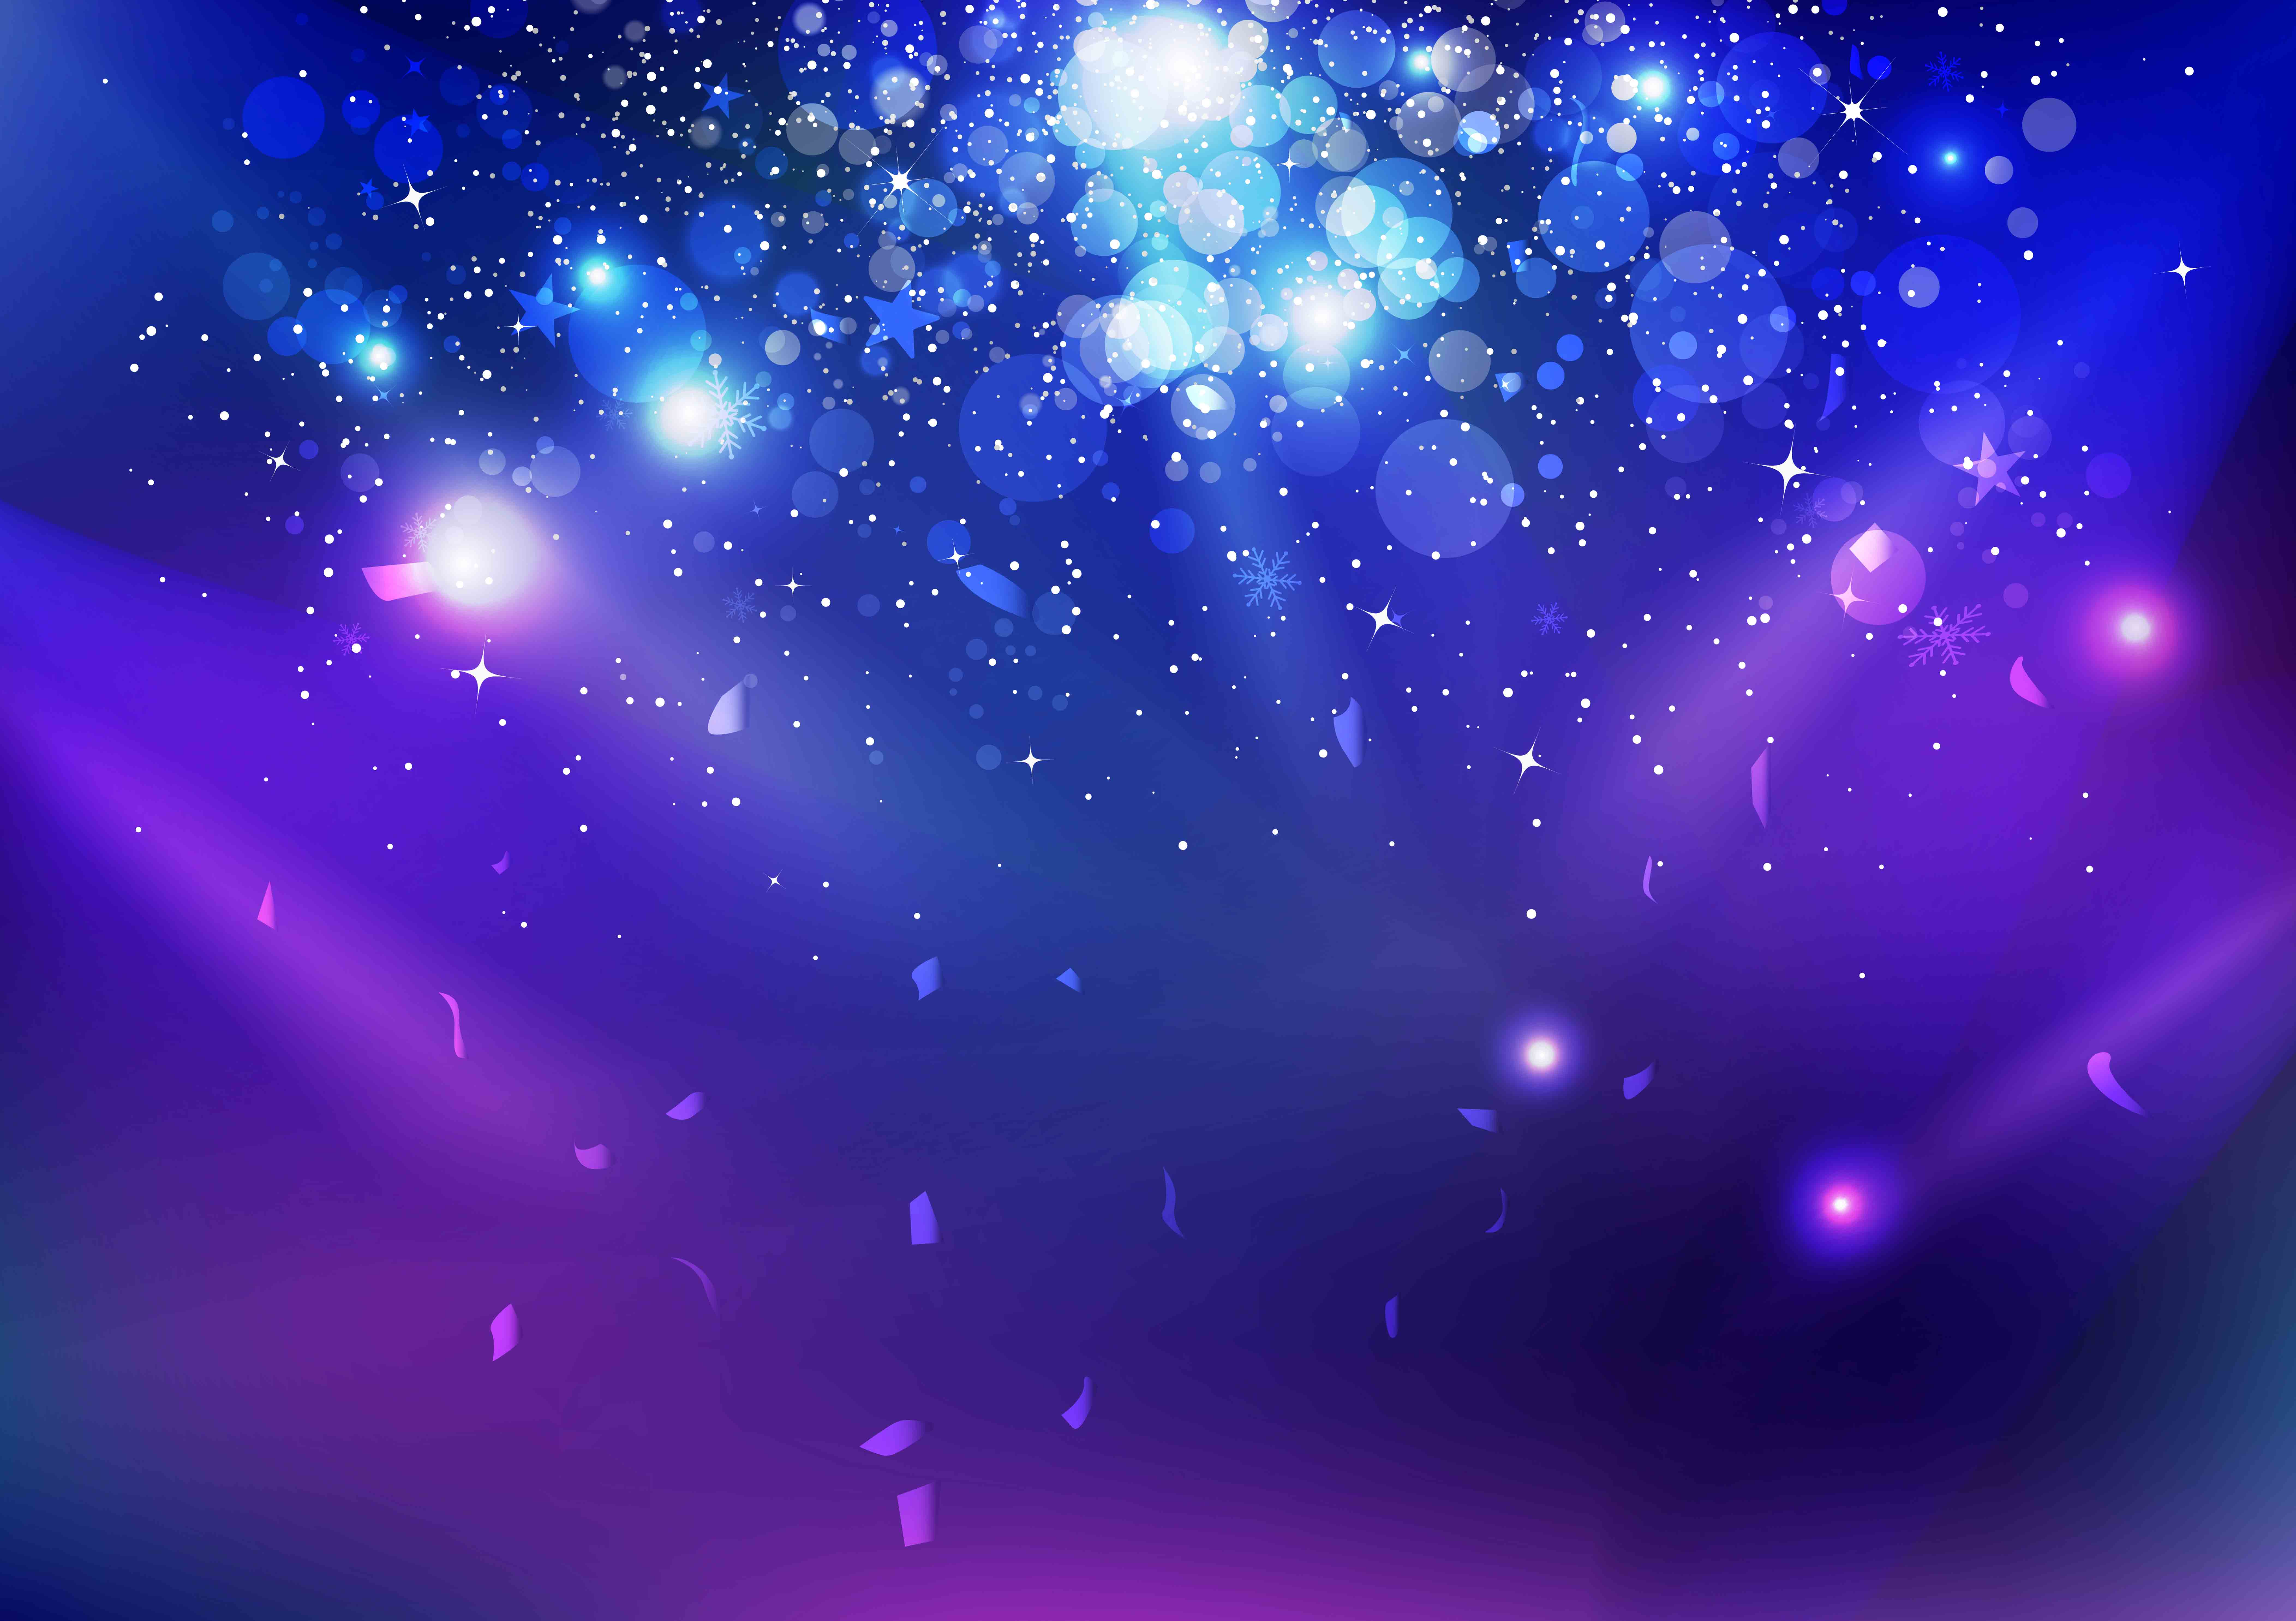 purple and blue background with confetti